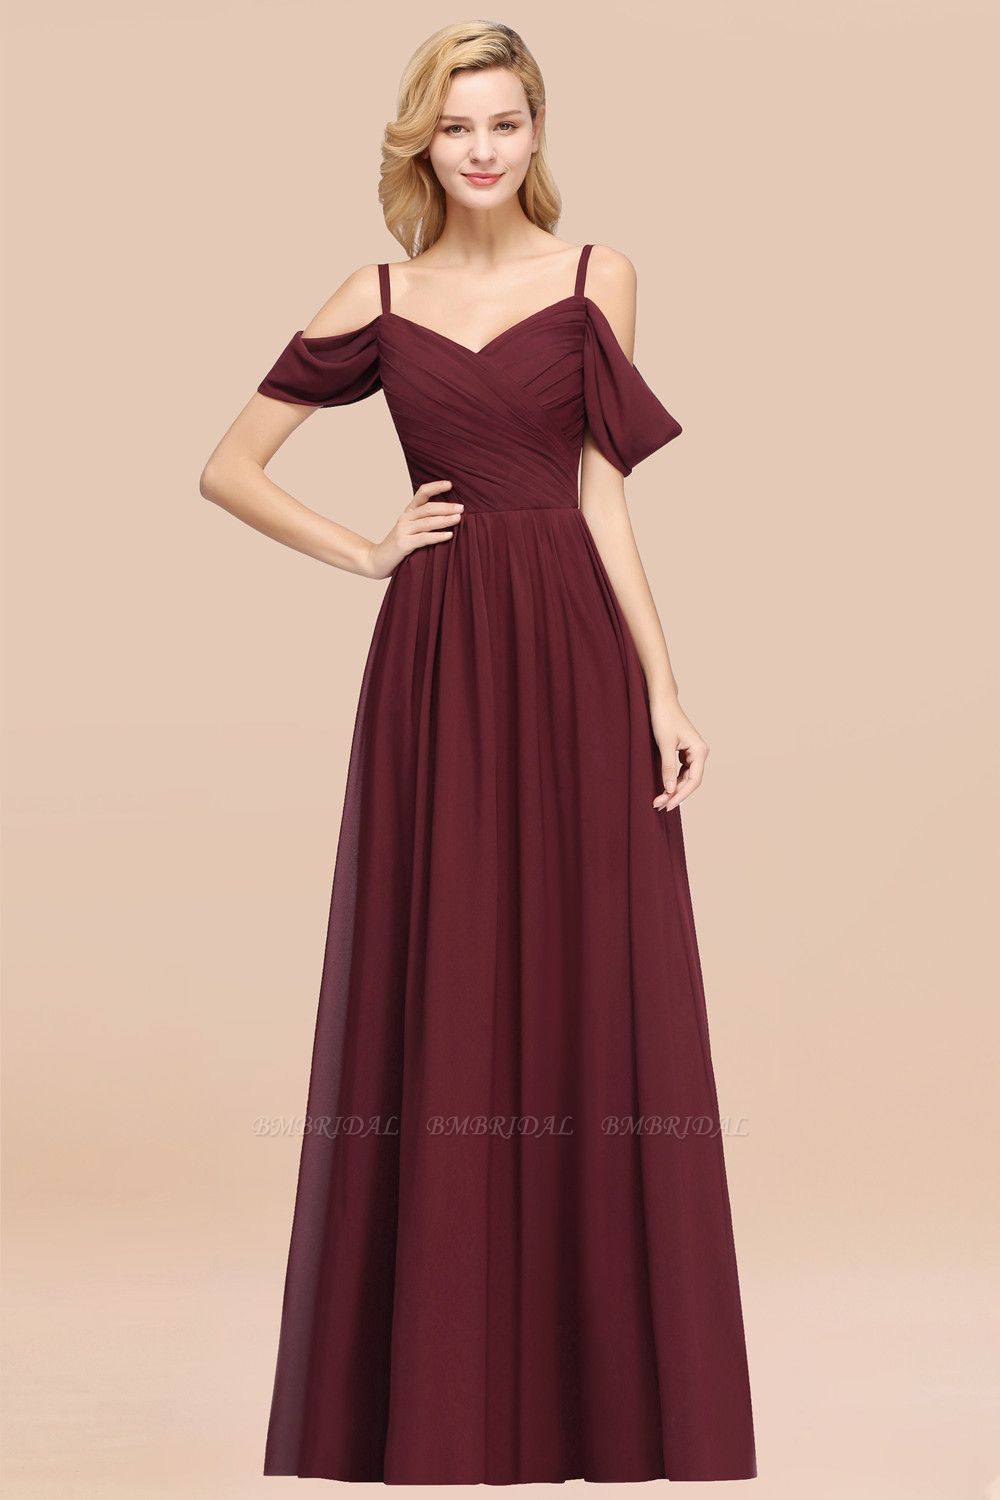 BMbridal Chic Off-the-shoulder Burgundy Bridesmaid Dress with Spaghetti Straps